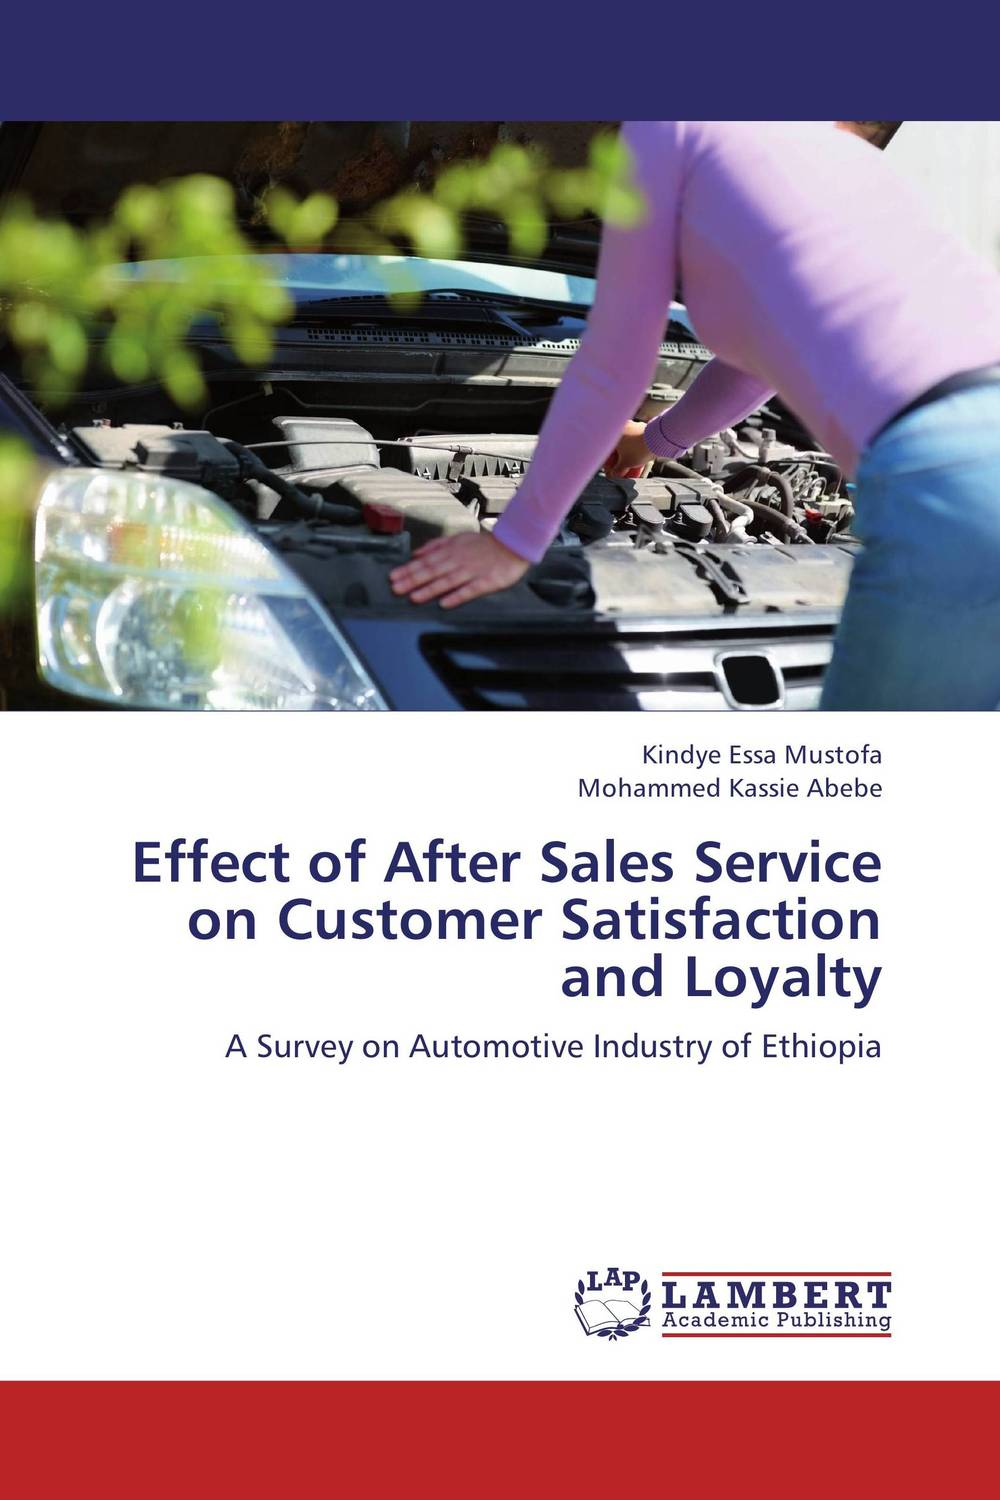 Effect of After Sales Service on Customer Satisfaction and Loyalty аудио кабель vovox link protect s200 trs xlrm